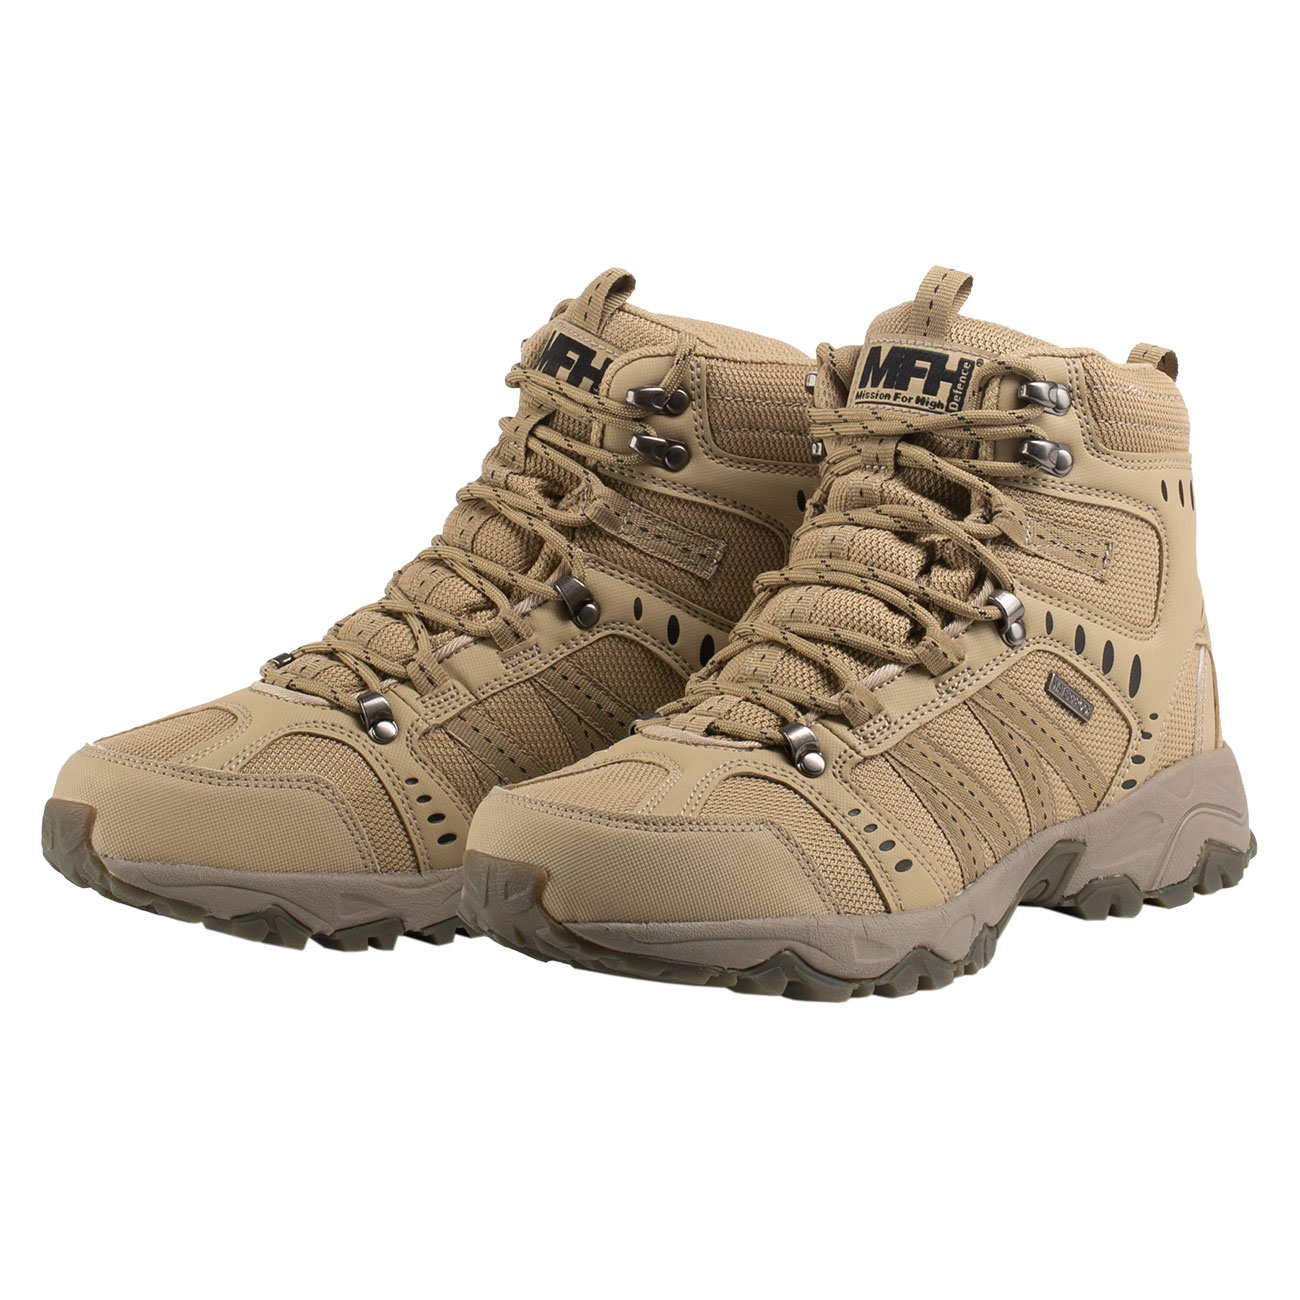 MFH Einsatzstiefel Tactical coyote tan 6